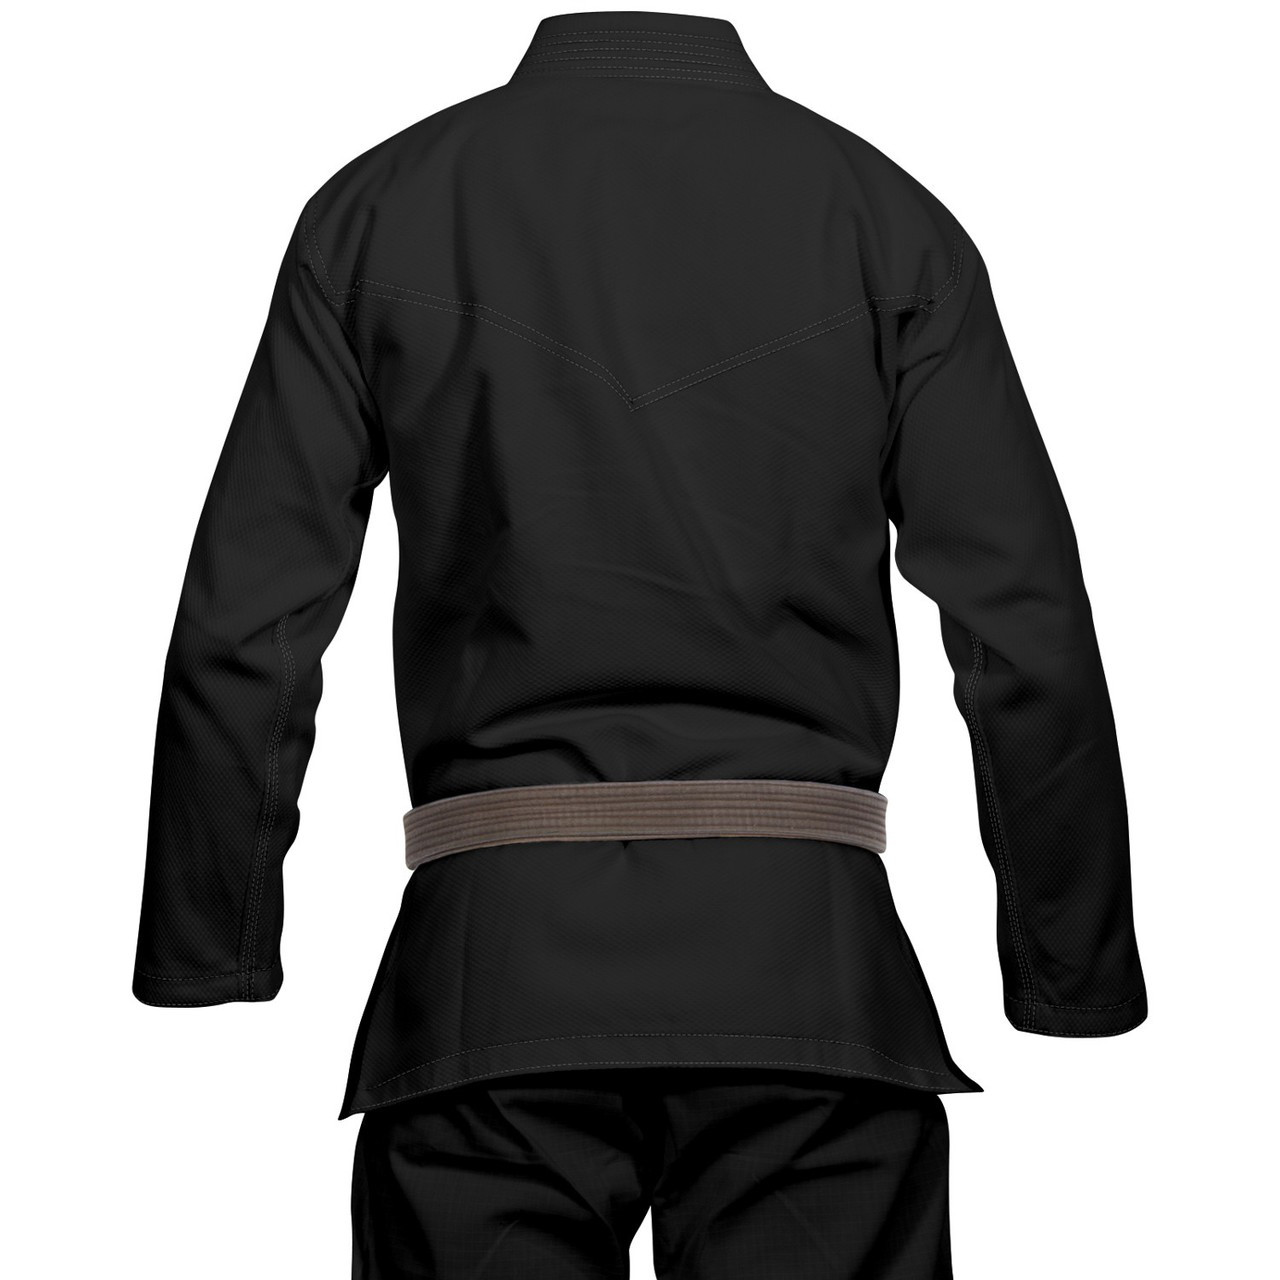 Back of the Venum Elite Classic BJJ GI in Black is now available at www.thejiujitsushop.com  Enjoy Free Shipping from The Jiu Jitsu Shop today!